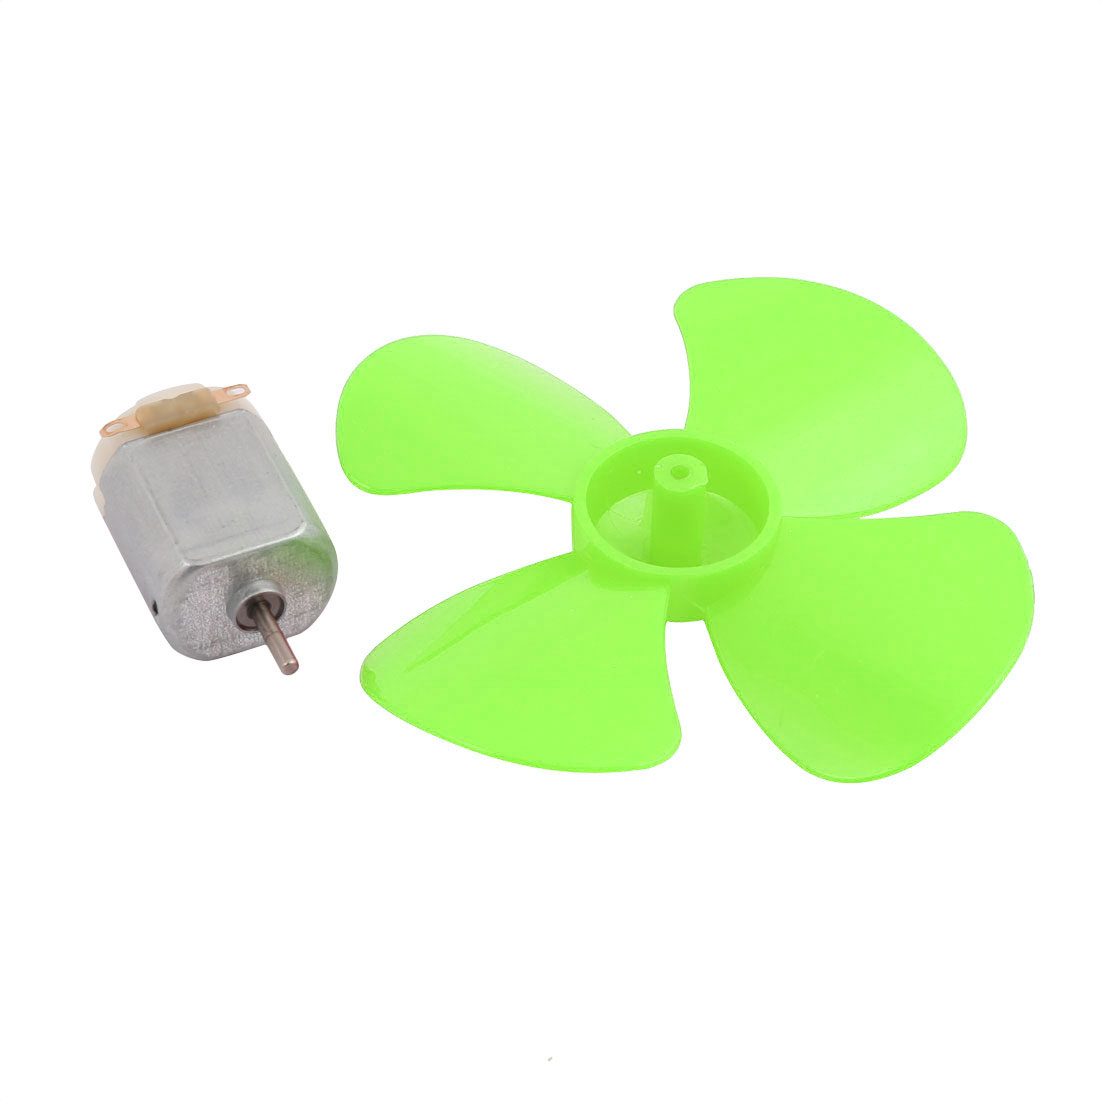 5Pcs DC 6V 0.21A 13000RPM Strong Force Motor 4 Vanes Green Propeller 80mmx2mm - image 4 of 5